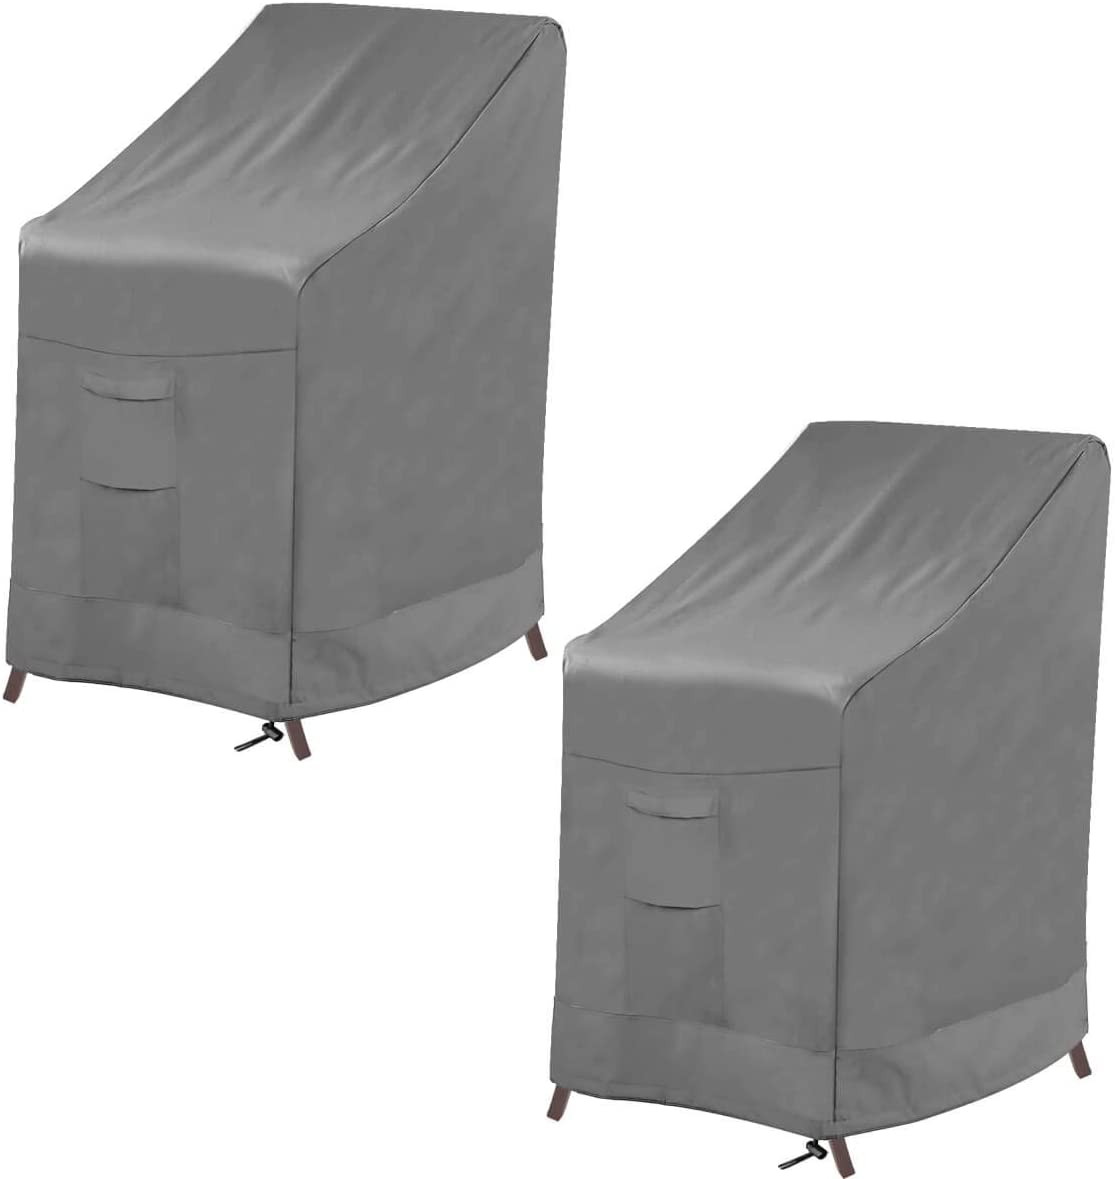 Vailge Stackable Patio Chair Cover,100% Waterproof Outdoor Chair Cover, Heavy Duty Lawn Patio Furniture Covers,Fits for 4-6 Stackable Dining Chairs,2 Pack-36 Lx28 Wx47 H,Grey